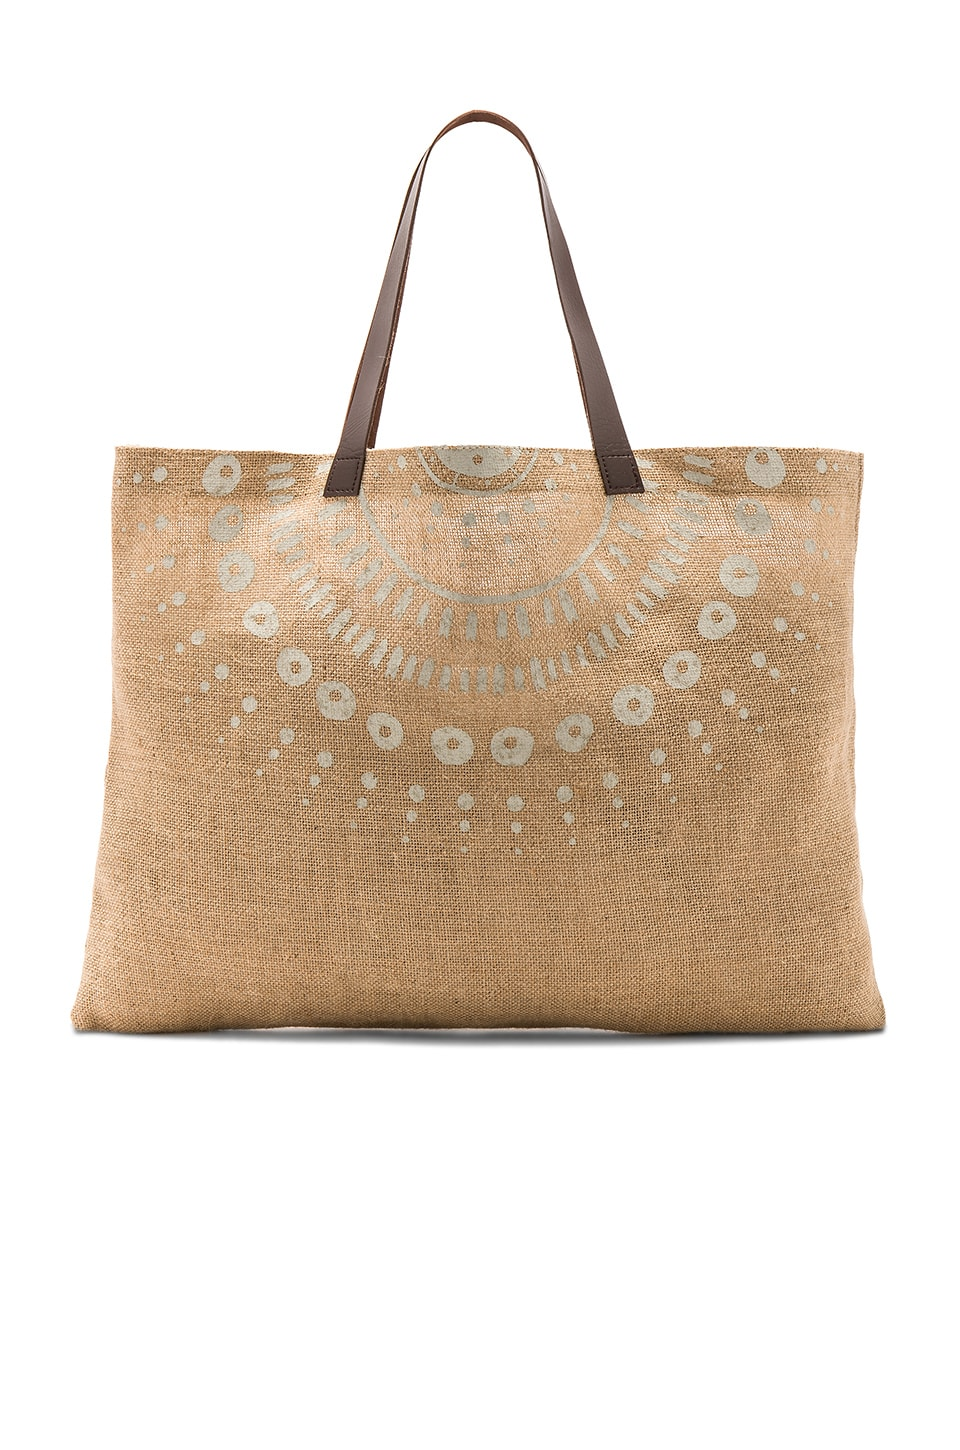 The Beach People Jute Wategos Bag in Natural